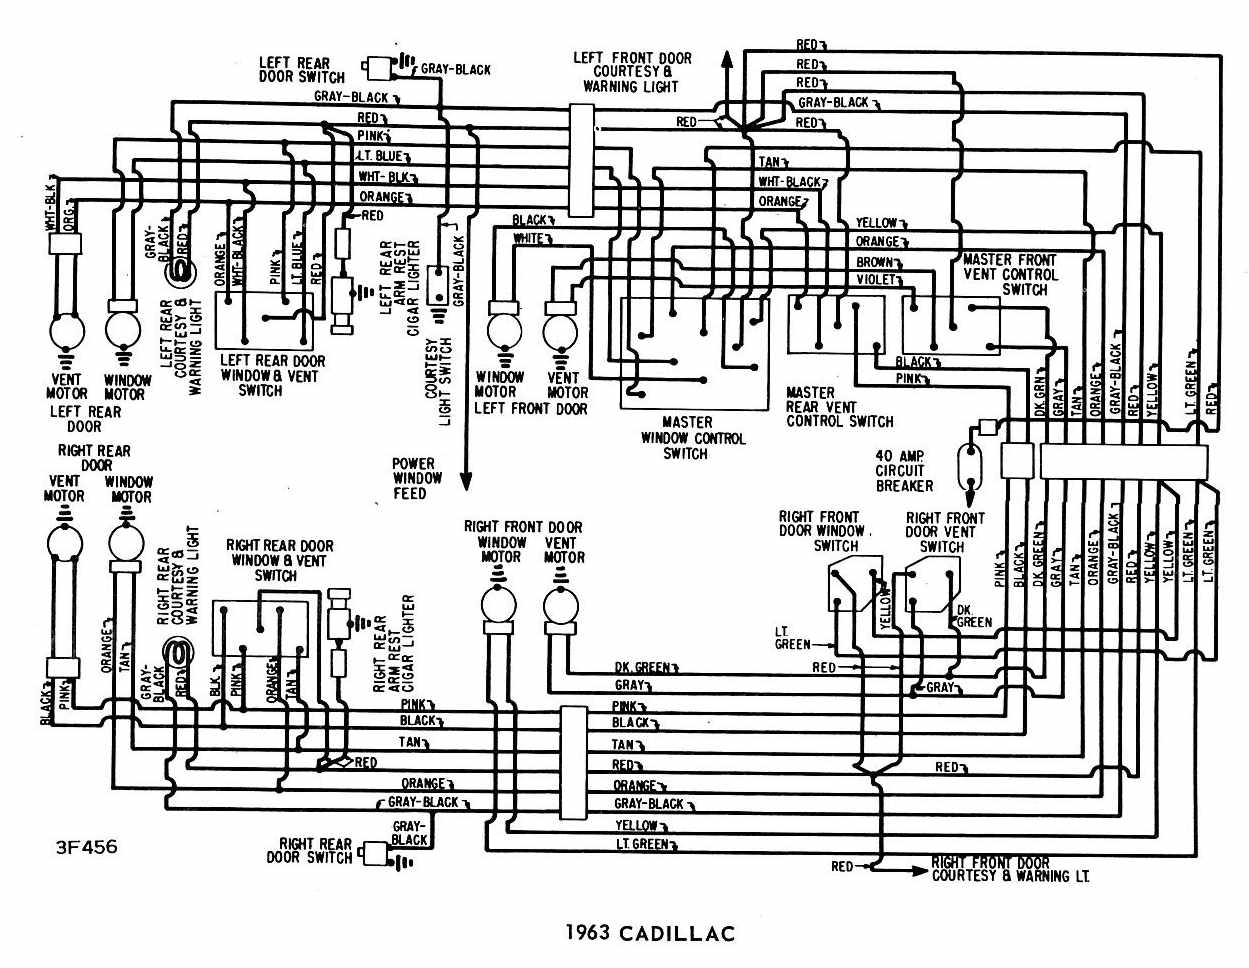 cadillac 1963 windows wiring diagram all about diagrams 1968 chevrolet corvette wiring diagram all about diagrams